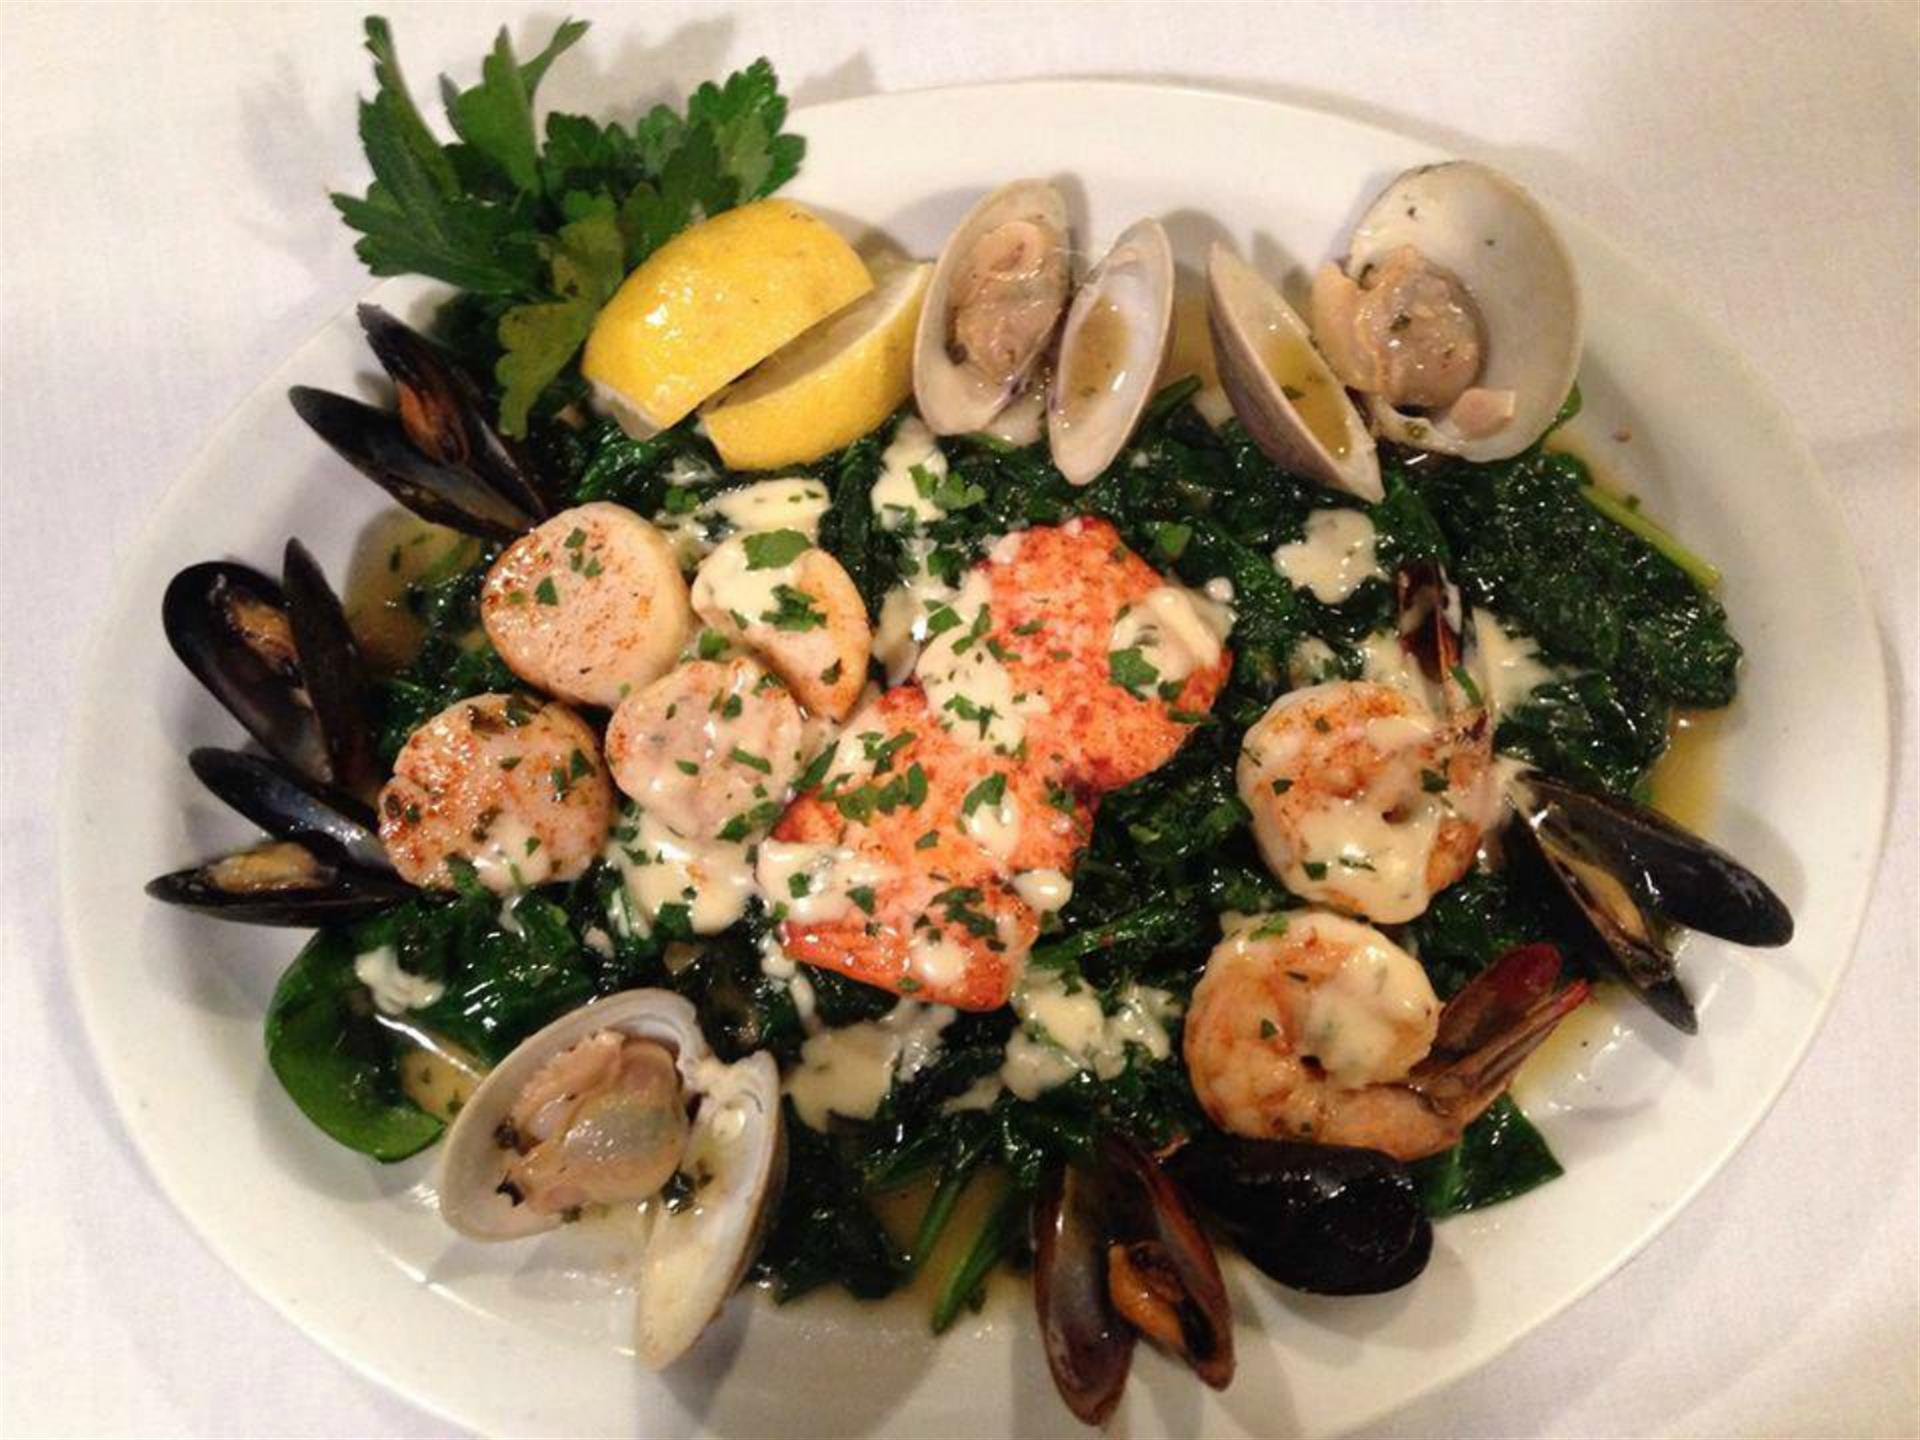 Salmon, shrimp, clams and mussels plate